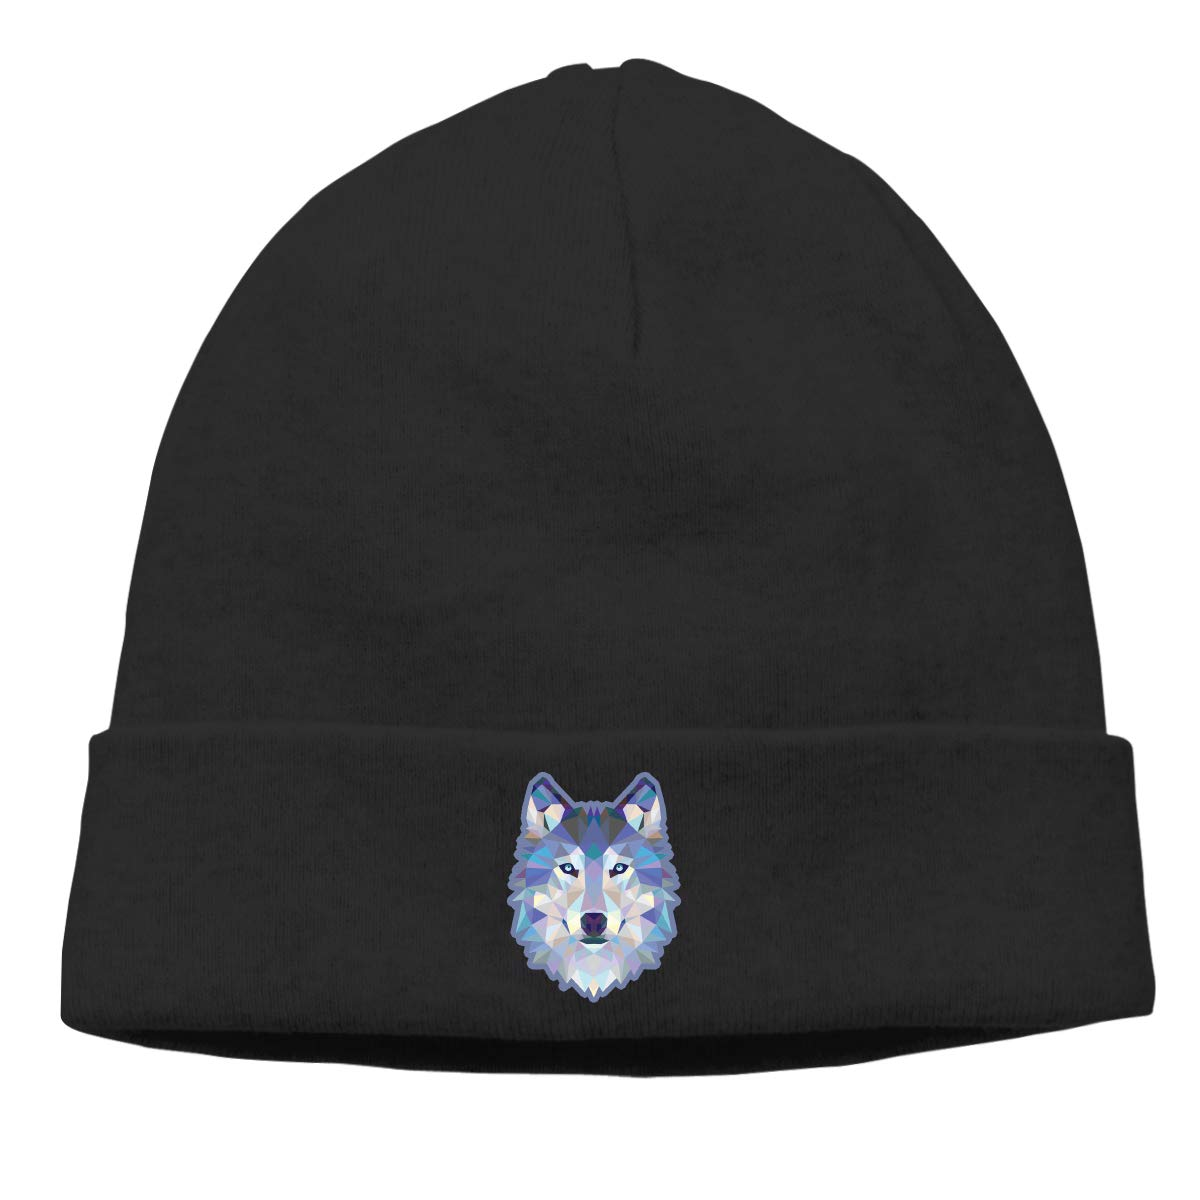 Blue Wolf Printed Cap Men /& Women Serious Style Serious Beanies Knit Cap Skully